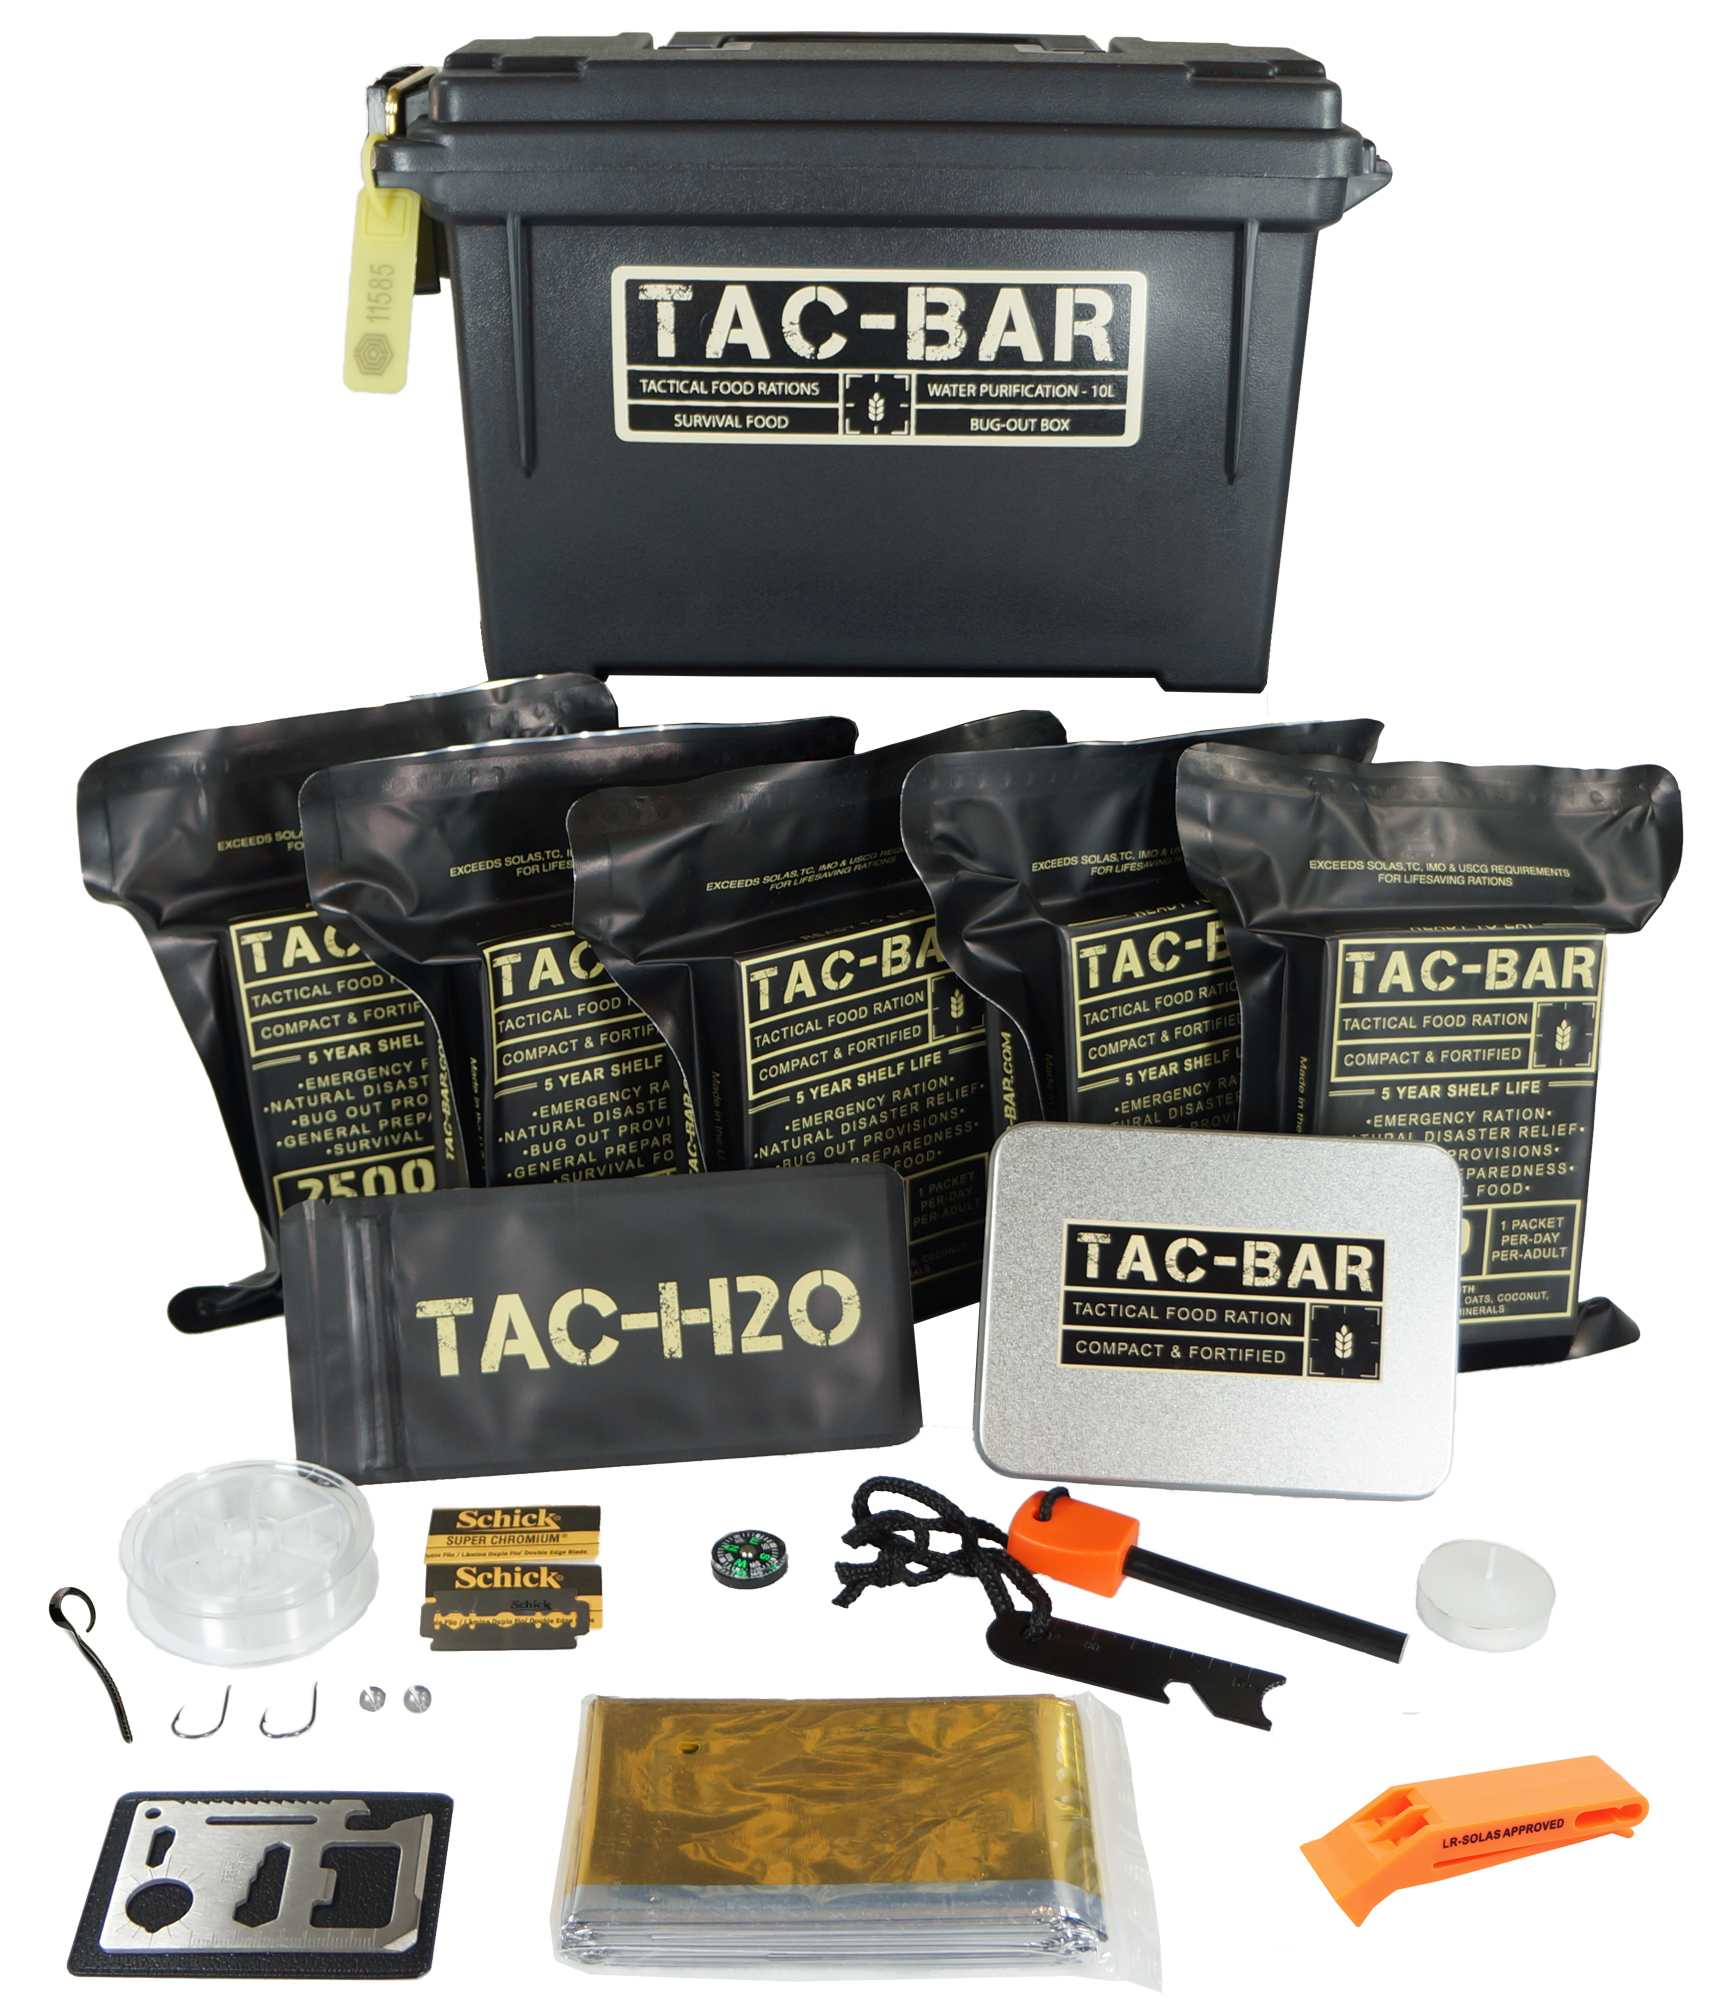 Tac-Bar Ready to Eat Tactical Food Rations for 5 Days (12,500cals) with 10 Aquatab 17 mg Water Purification Tablets Free Survival Kit by Expedition Research LLC